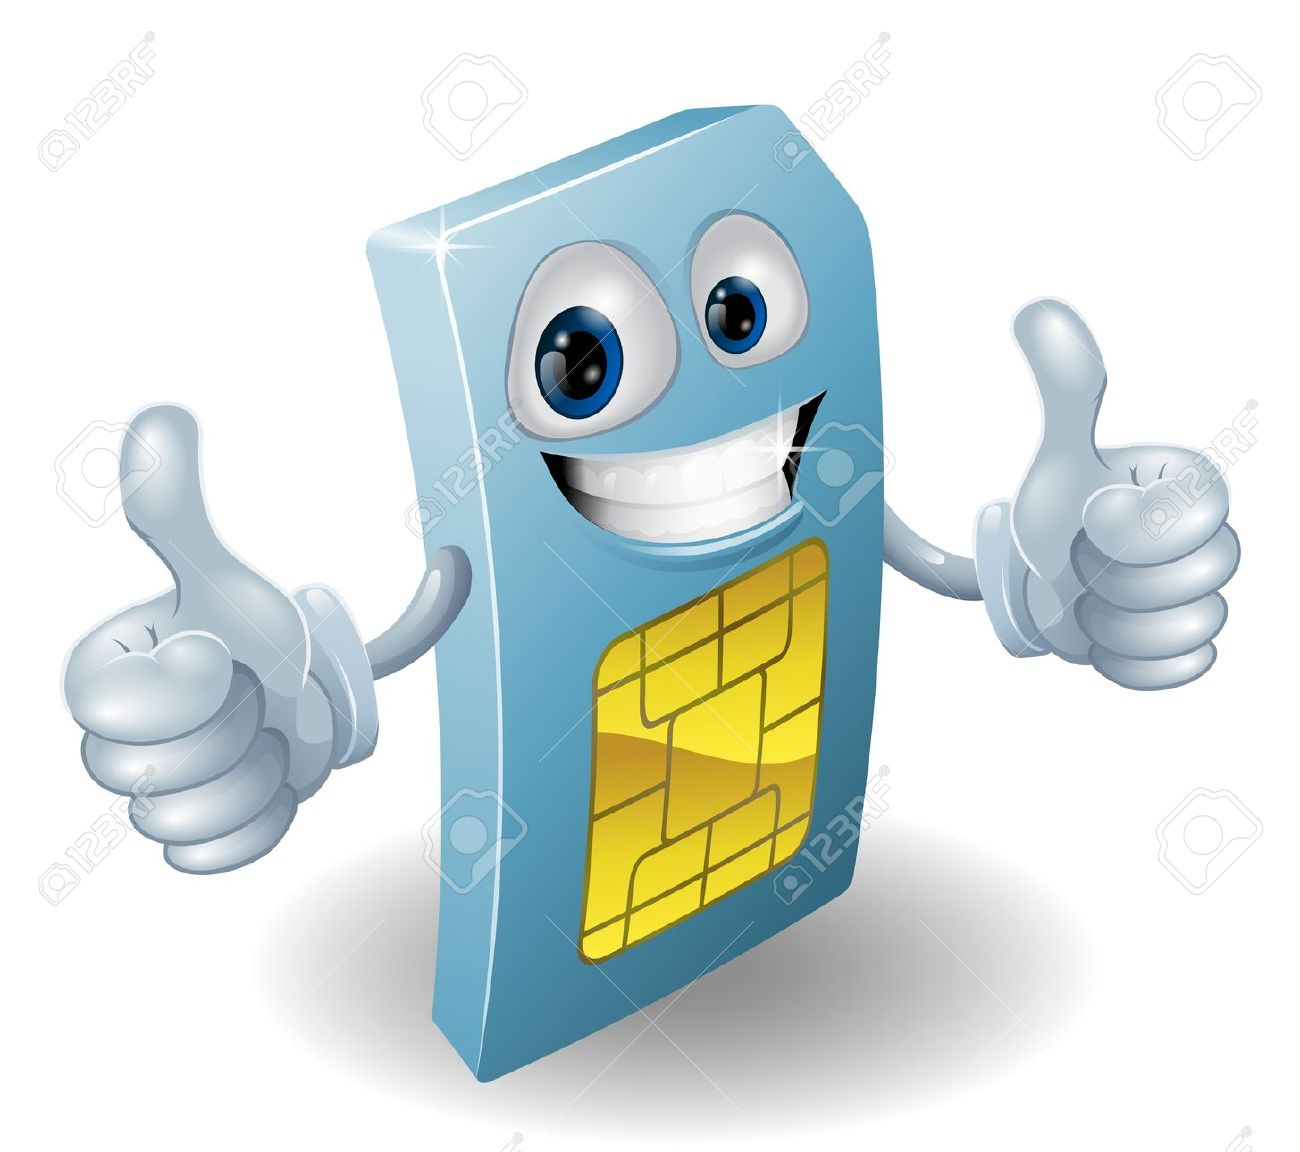 Thumbs up person clipart banner free download Illustration Of A Happy Phone Sim Card Person Doing A Thumbs ... banner free download